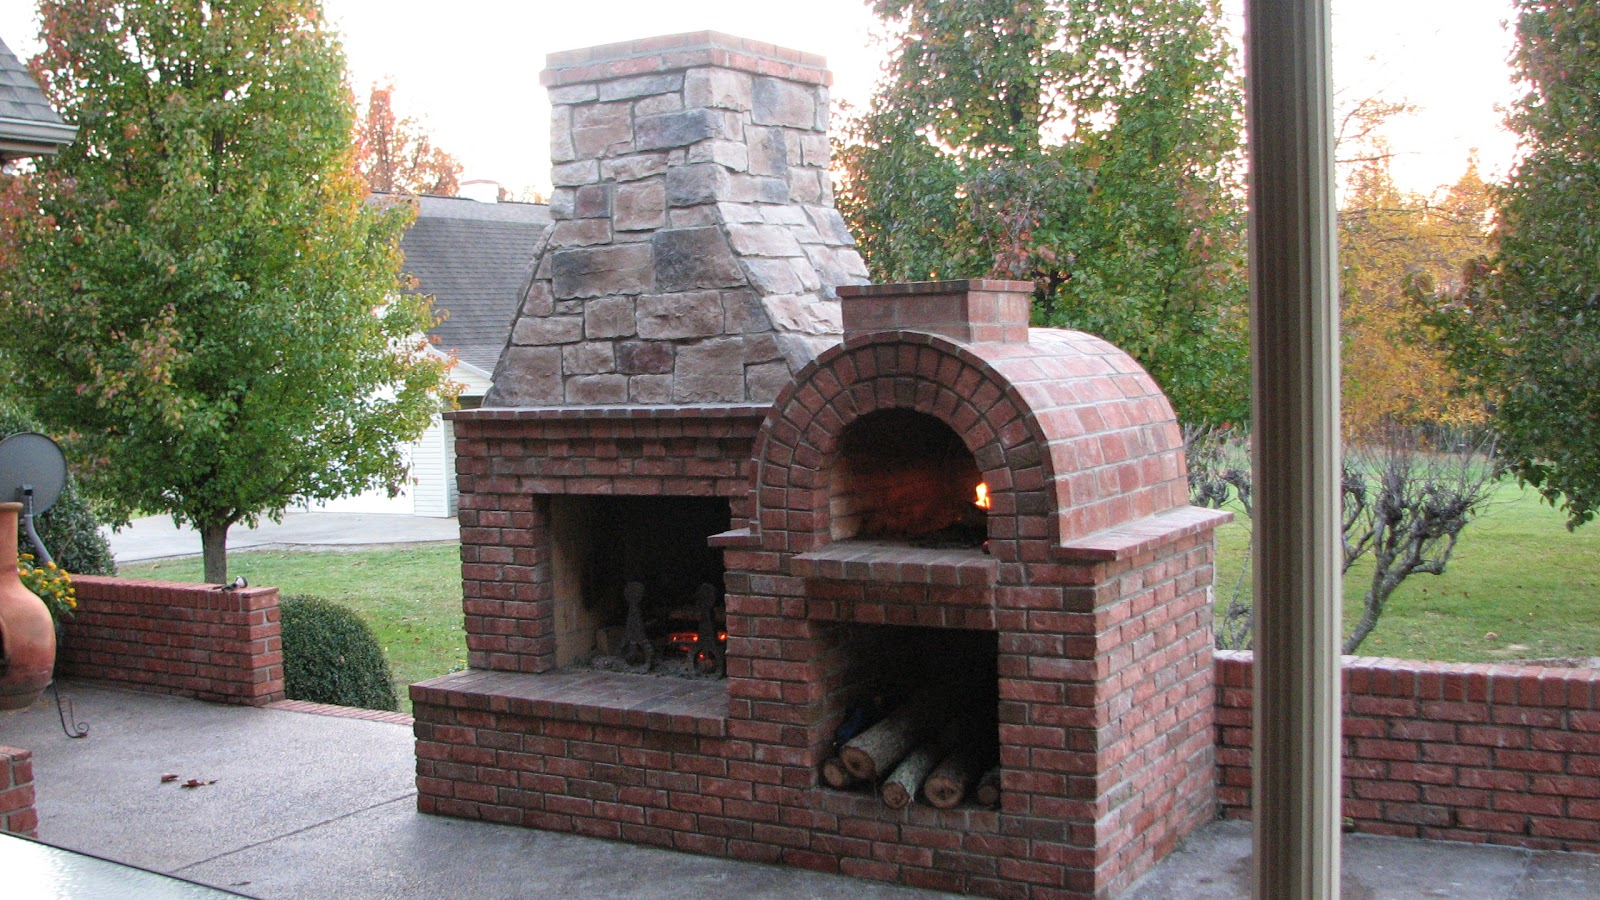 Riley Wood Fired Brick Pizza Oven And Fireplace Combo From A Diy Master In Kentucky